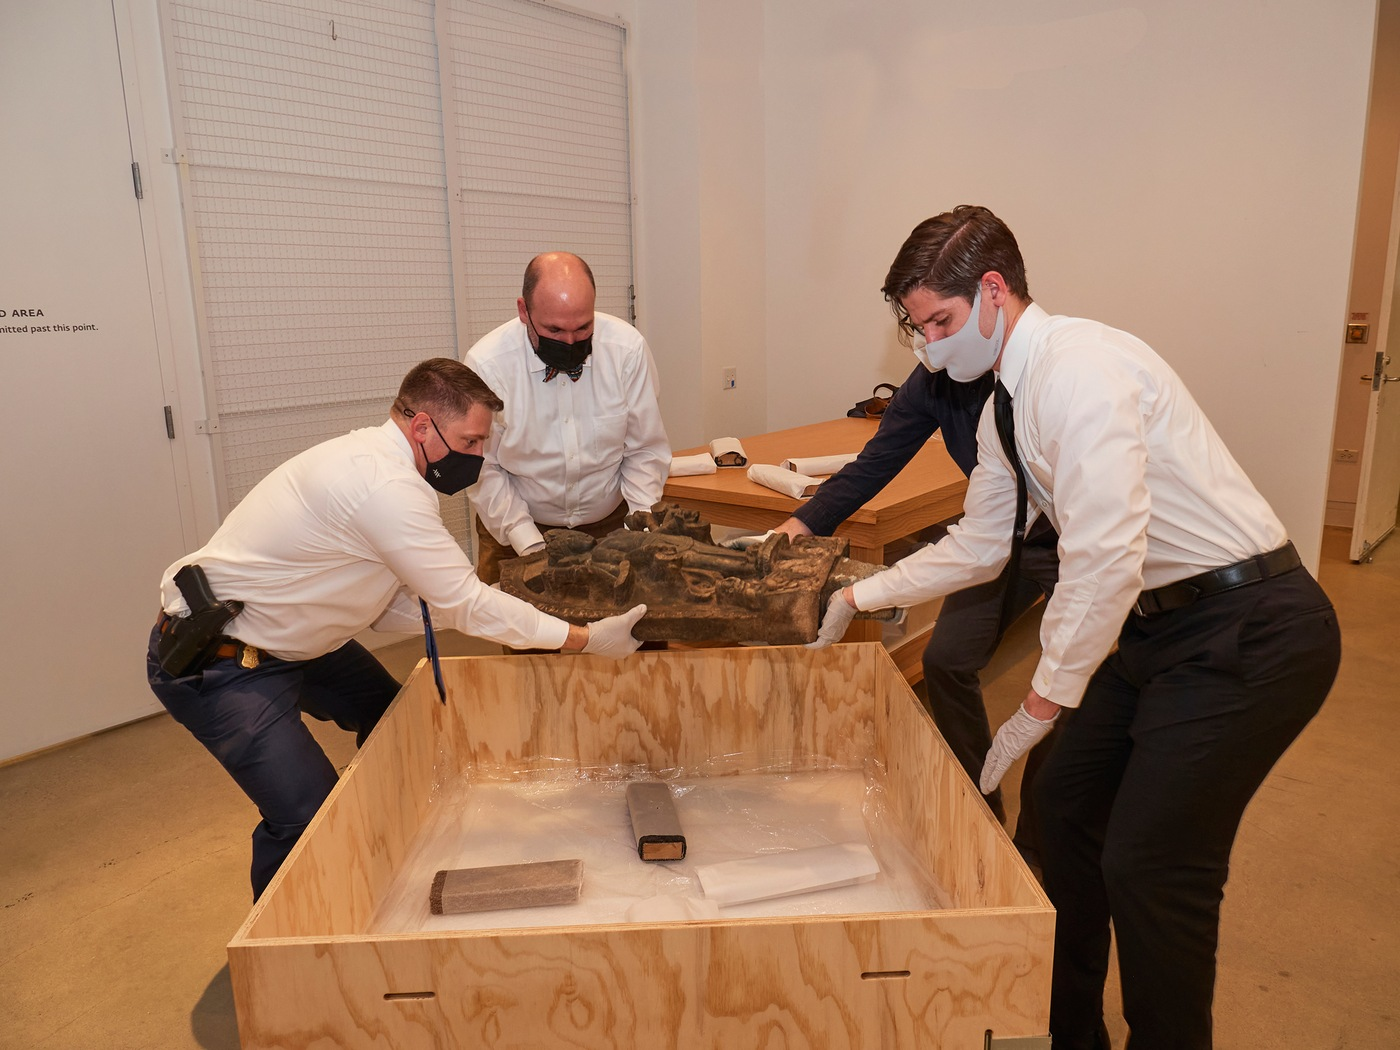 FBI agents trained in art transportation package and crate the Stele of Lakshmi-Narayana at the Dallas Museum of Art on March 2, 2021, in preparation for its return to the government of Nepal. (Photo courtesy of the Dallas Museum of Art)